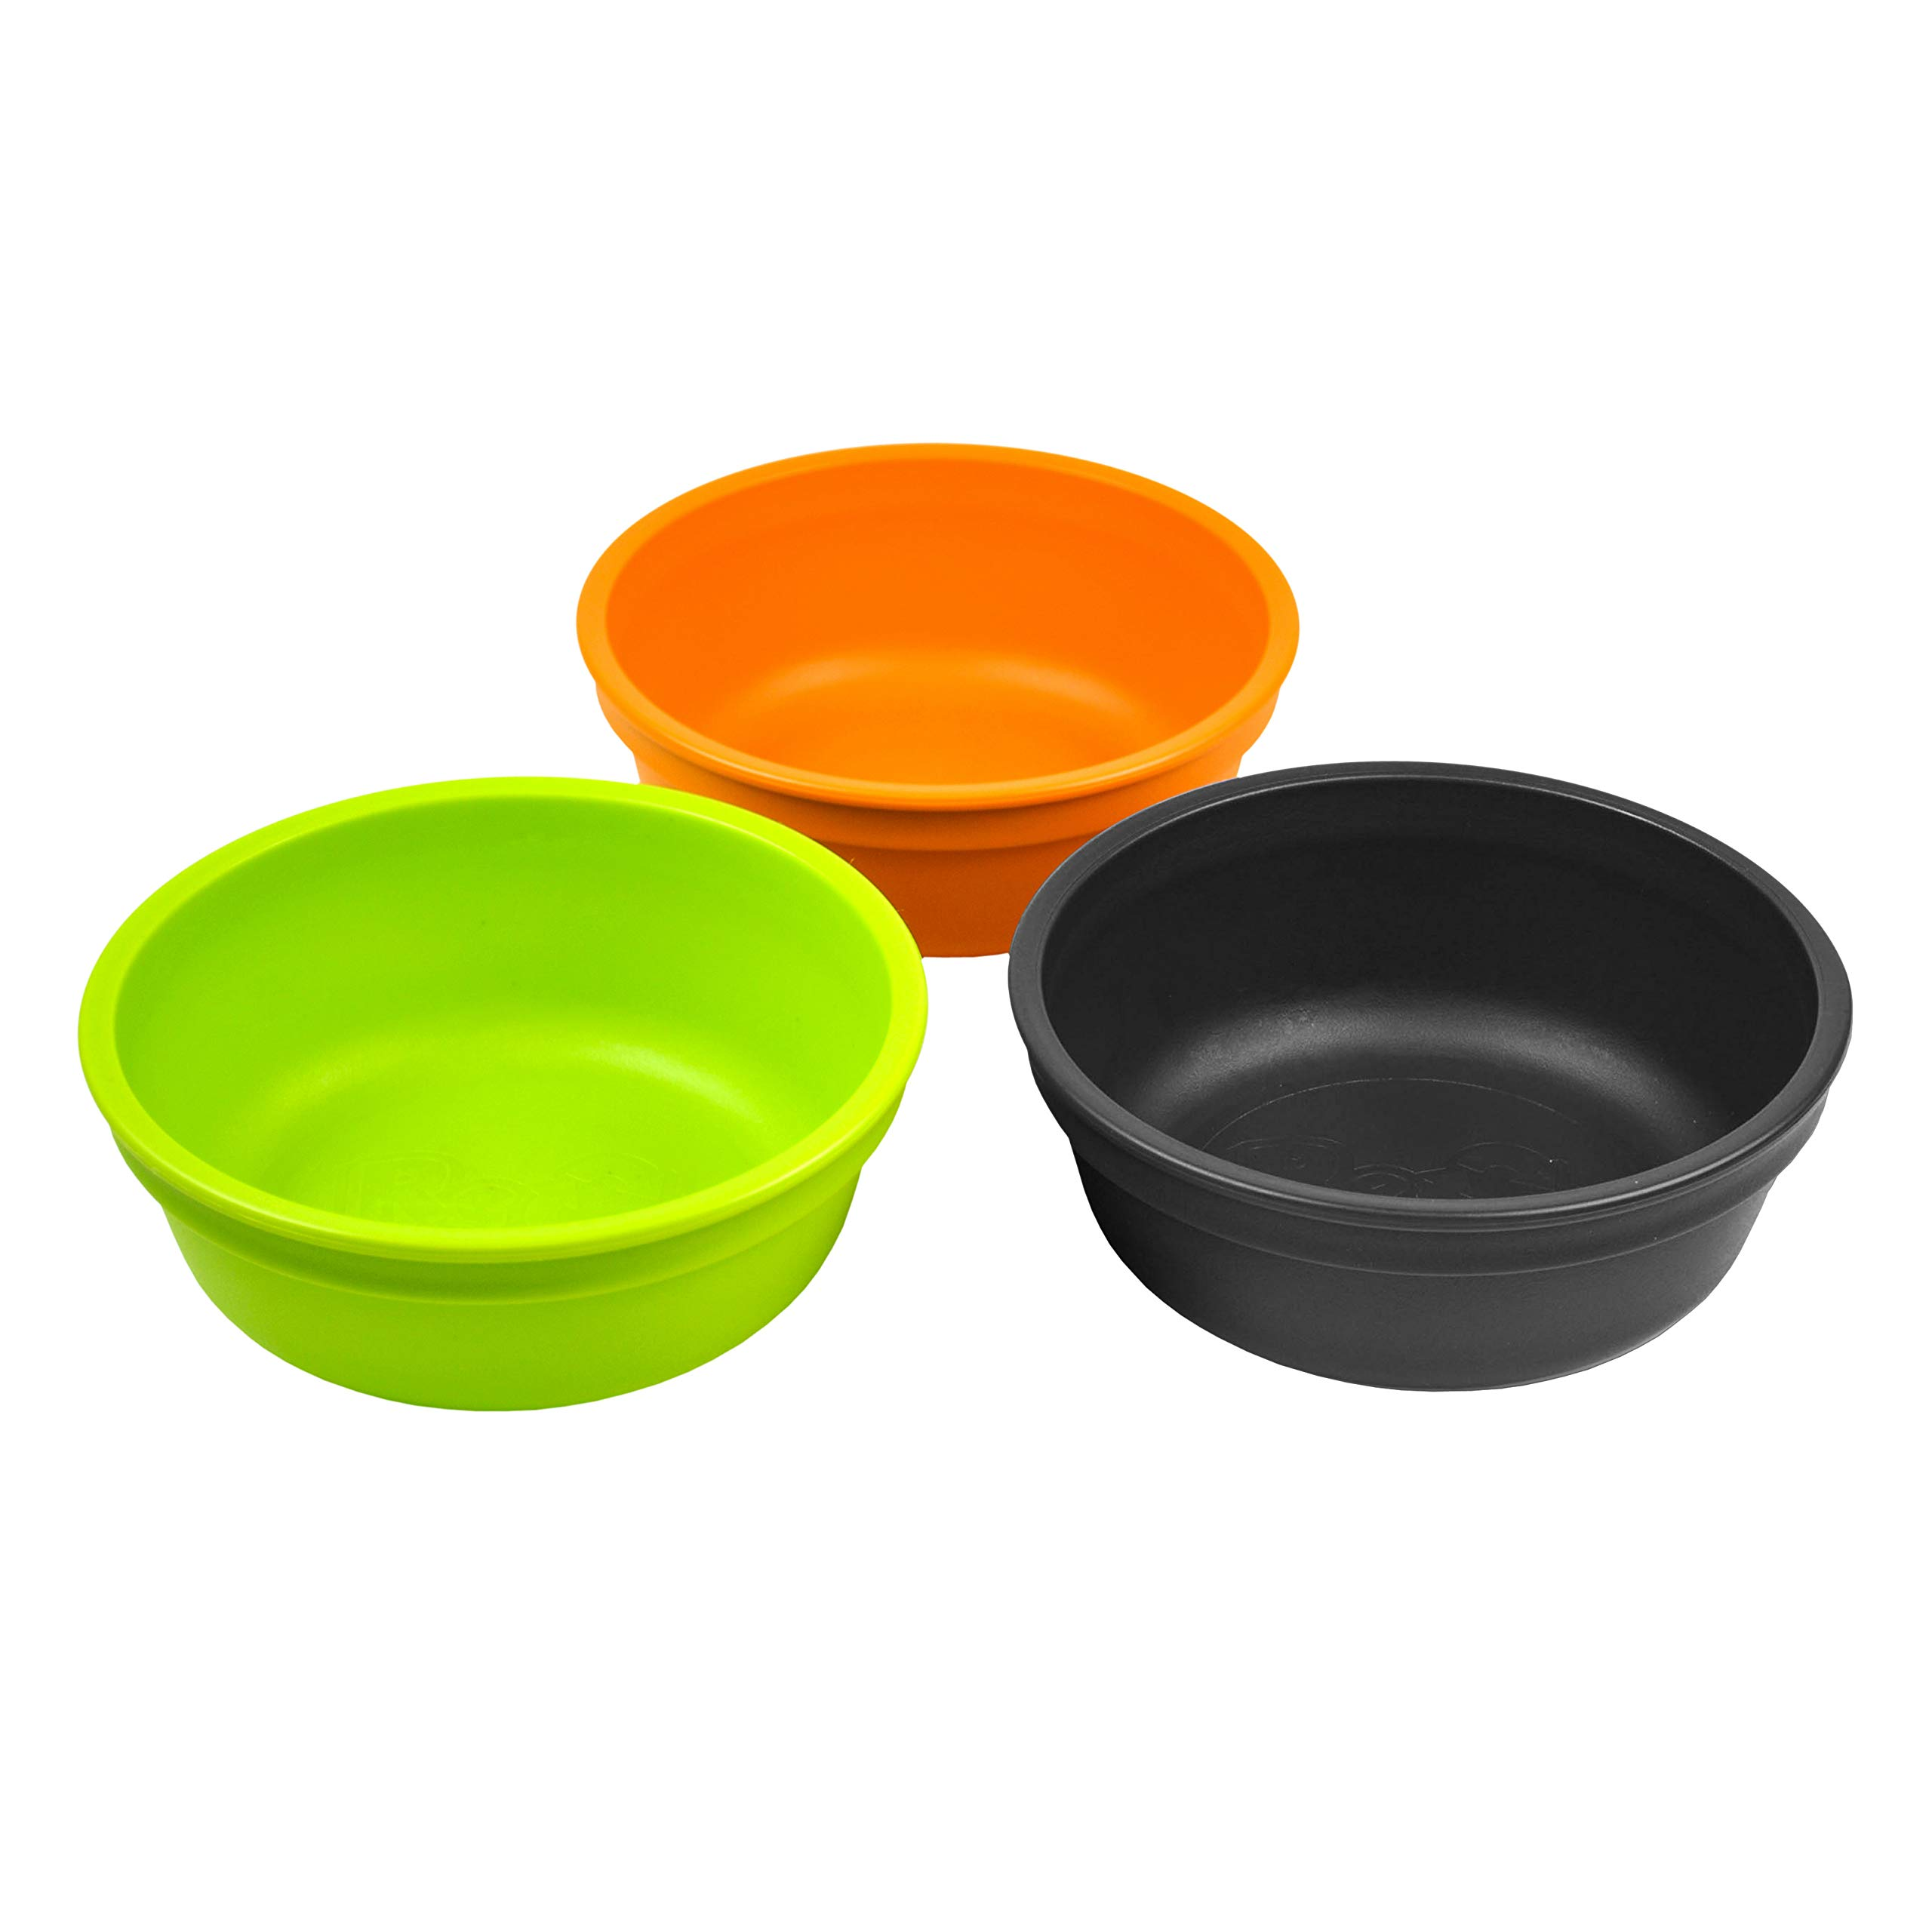 Re-Play Made in USA 3pk 12 oz. Bowls in Orange, Black and Lime Green | Made from Eco Friendly Heavyweight Recycled Milk Jugs and Polypropylene - Virtually Indestructible (Halloween)